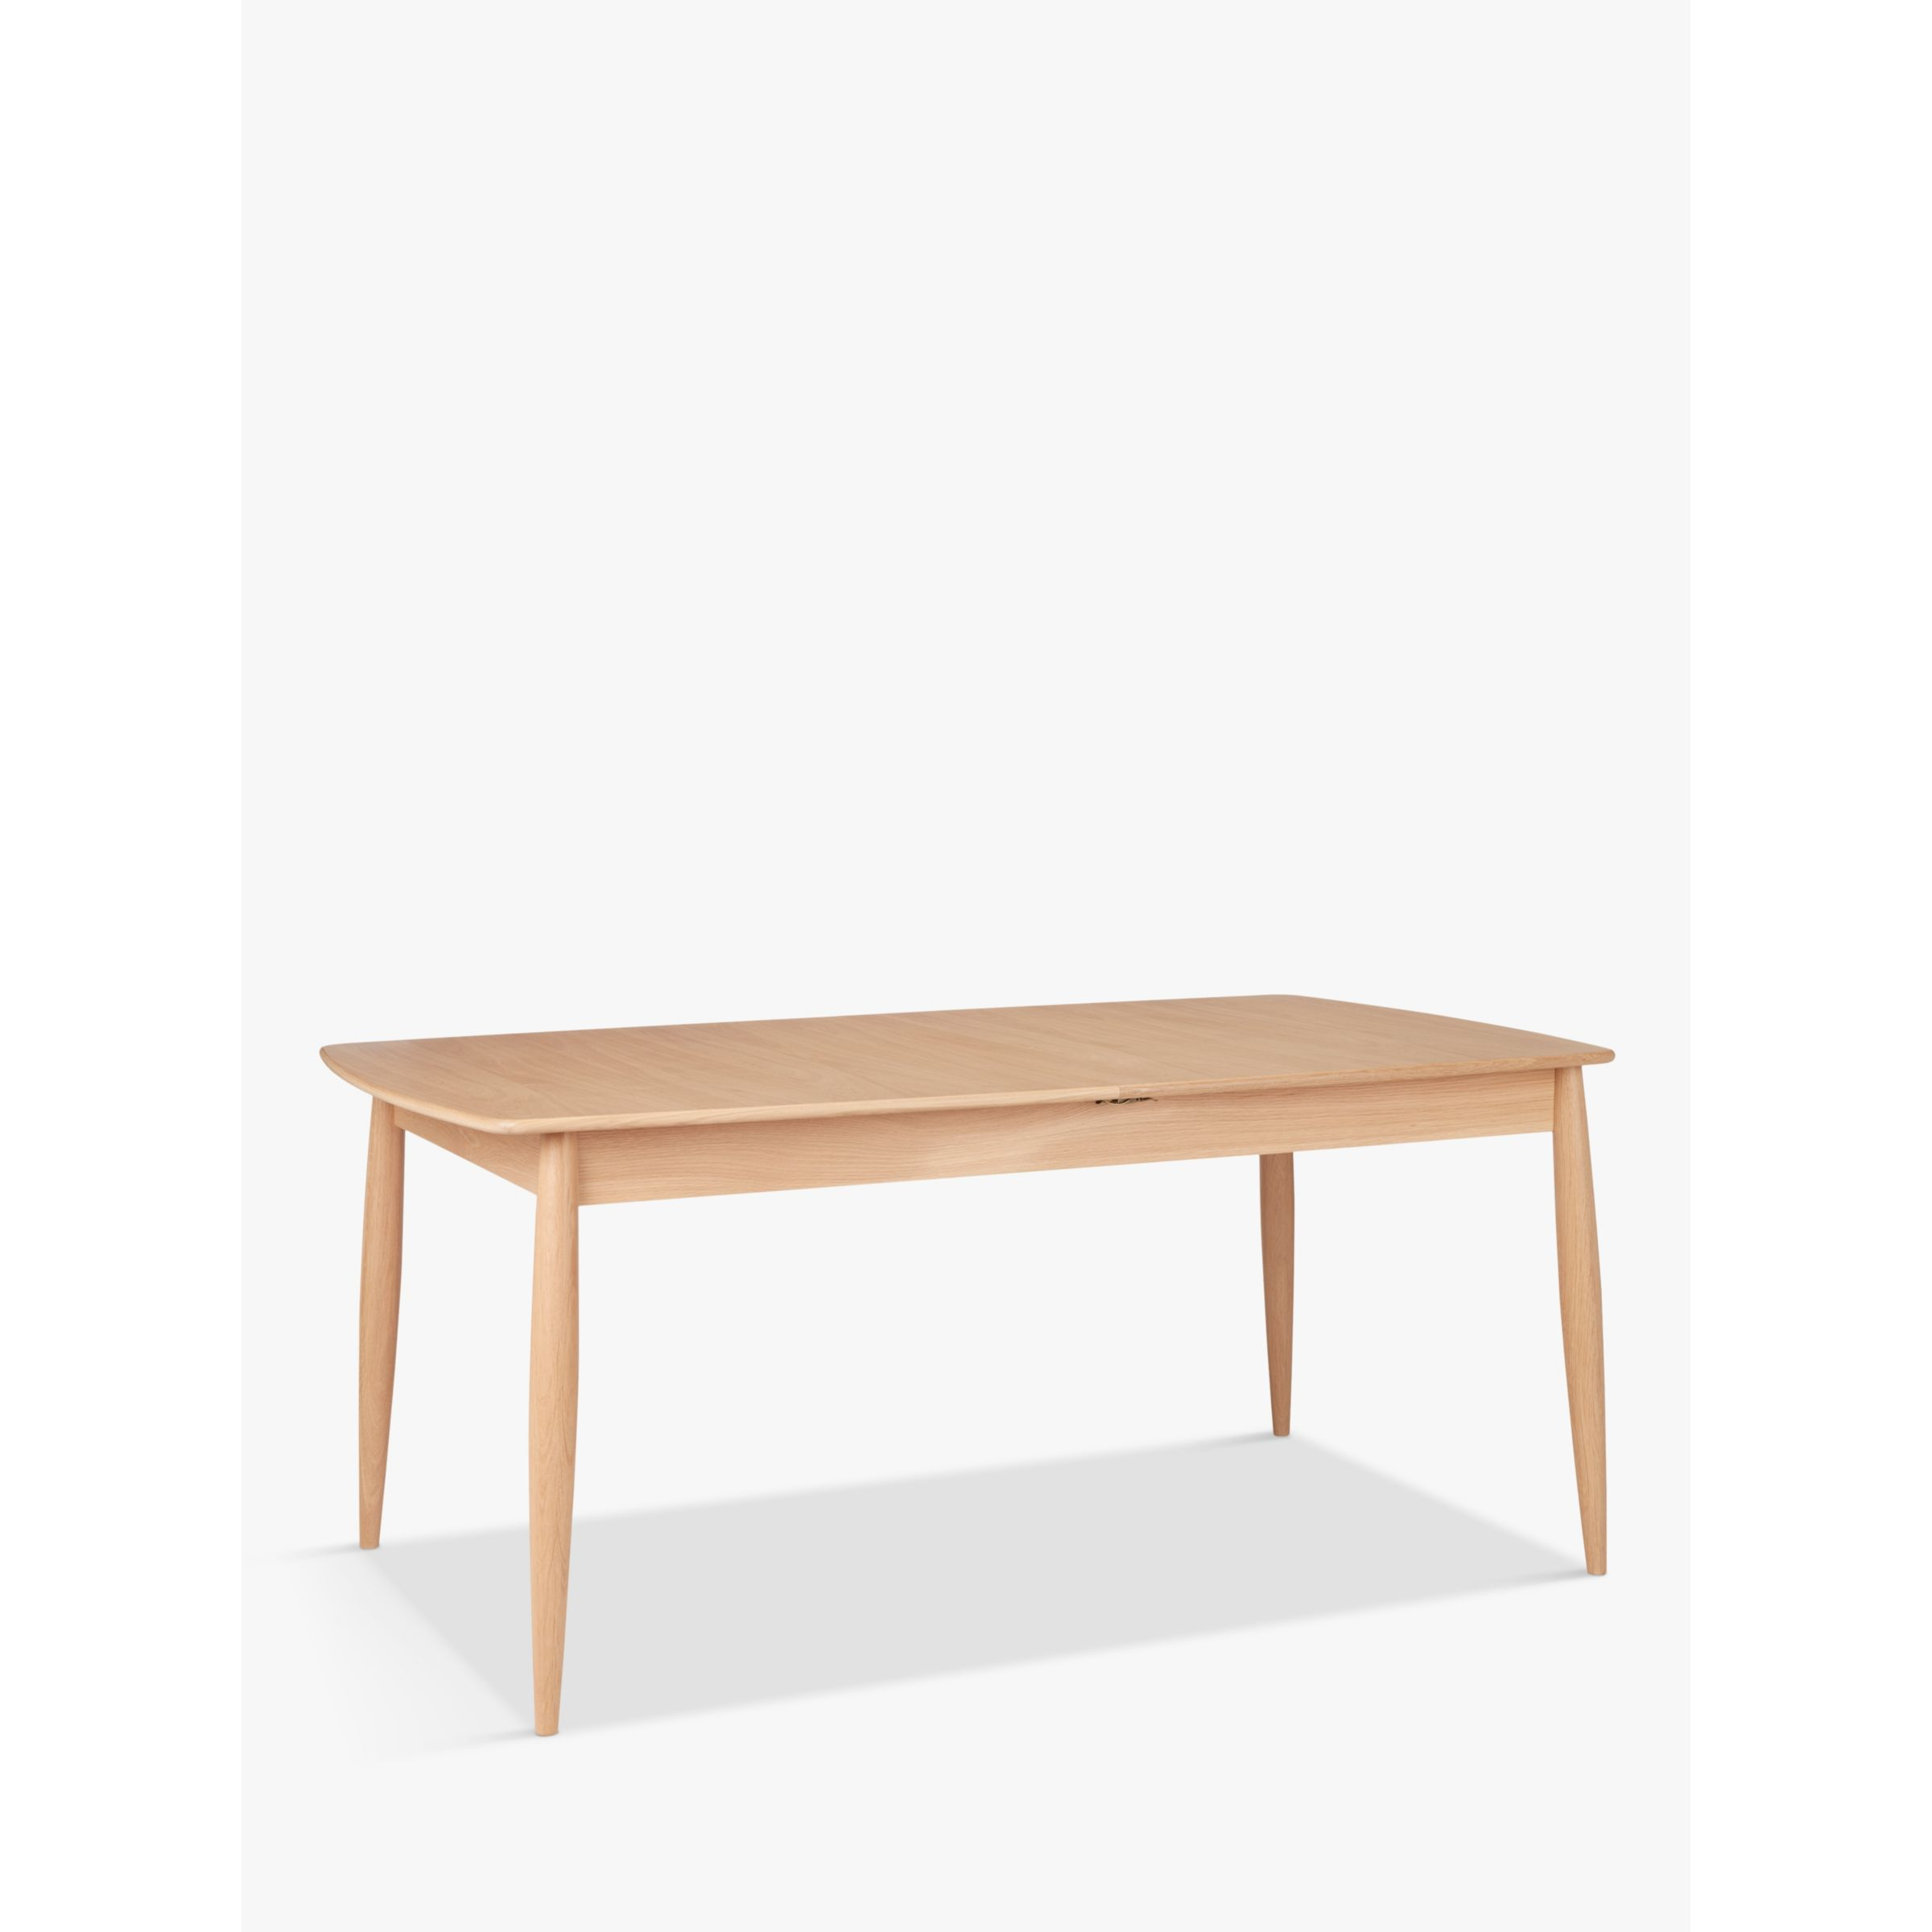 ercol for John Lewis ercol for John Lewis Shalstone 6-8 Seater Extending Dining Table, Oak